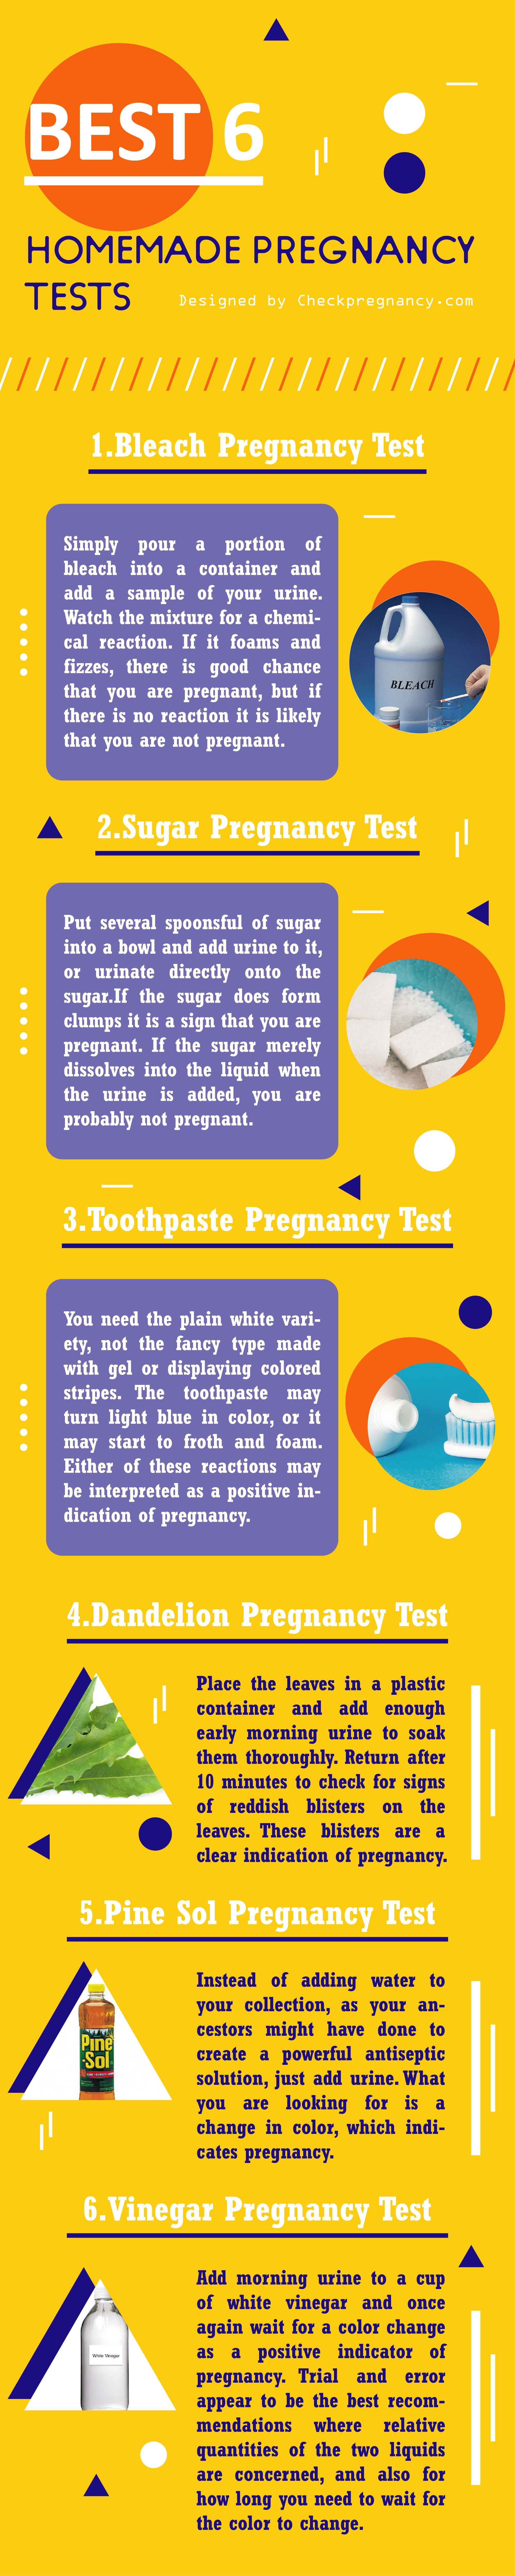 Pin by Fogut on Homemade Pregnancy Tests Pinterest